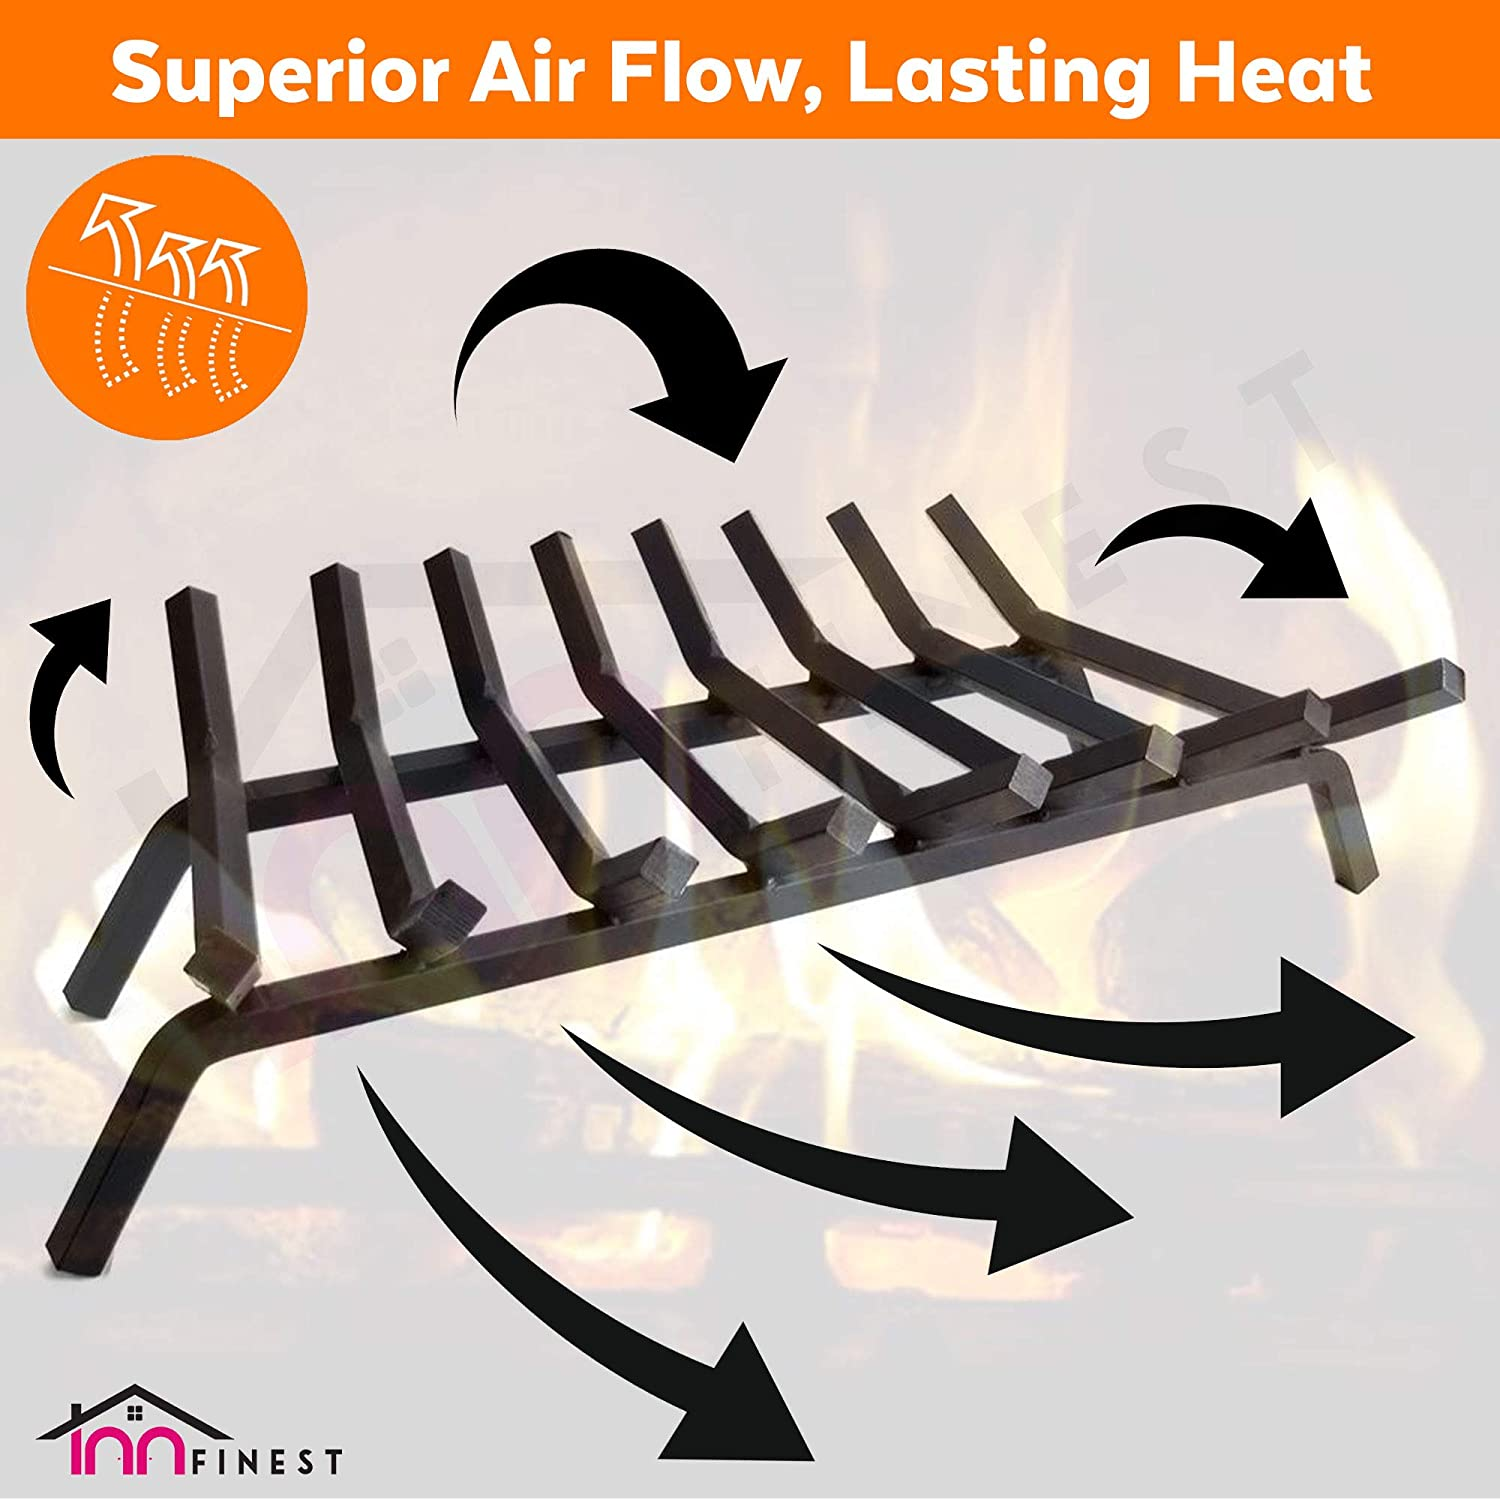 """For Indoor Chimney Hearth Outdoor Fire Place Kindling Tool Pit Wrought Iron Wood Stove Firewood Burning Rack Holder Fireplace Log Grate 18 inch Heavy Duty 3//4/"""" Wide Solid Steel 5 Bar Fire Grates"""